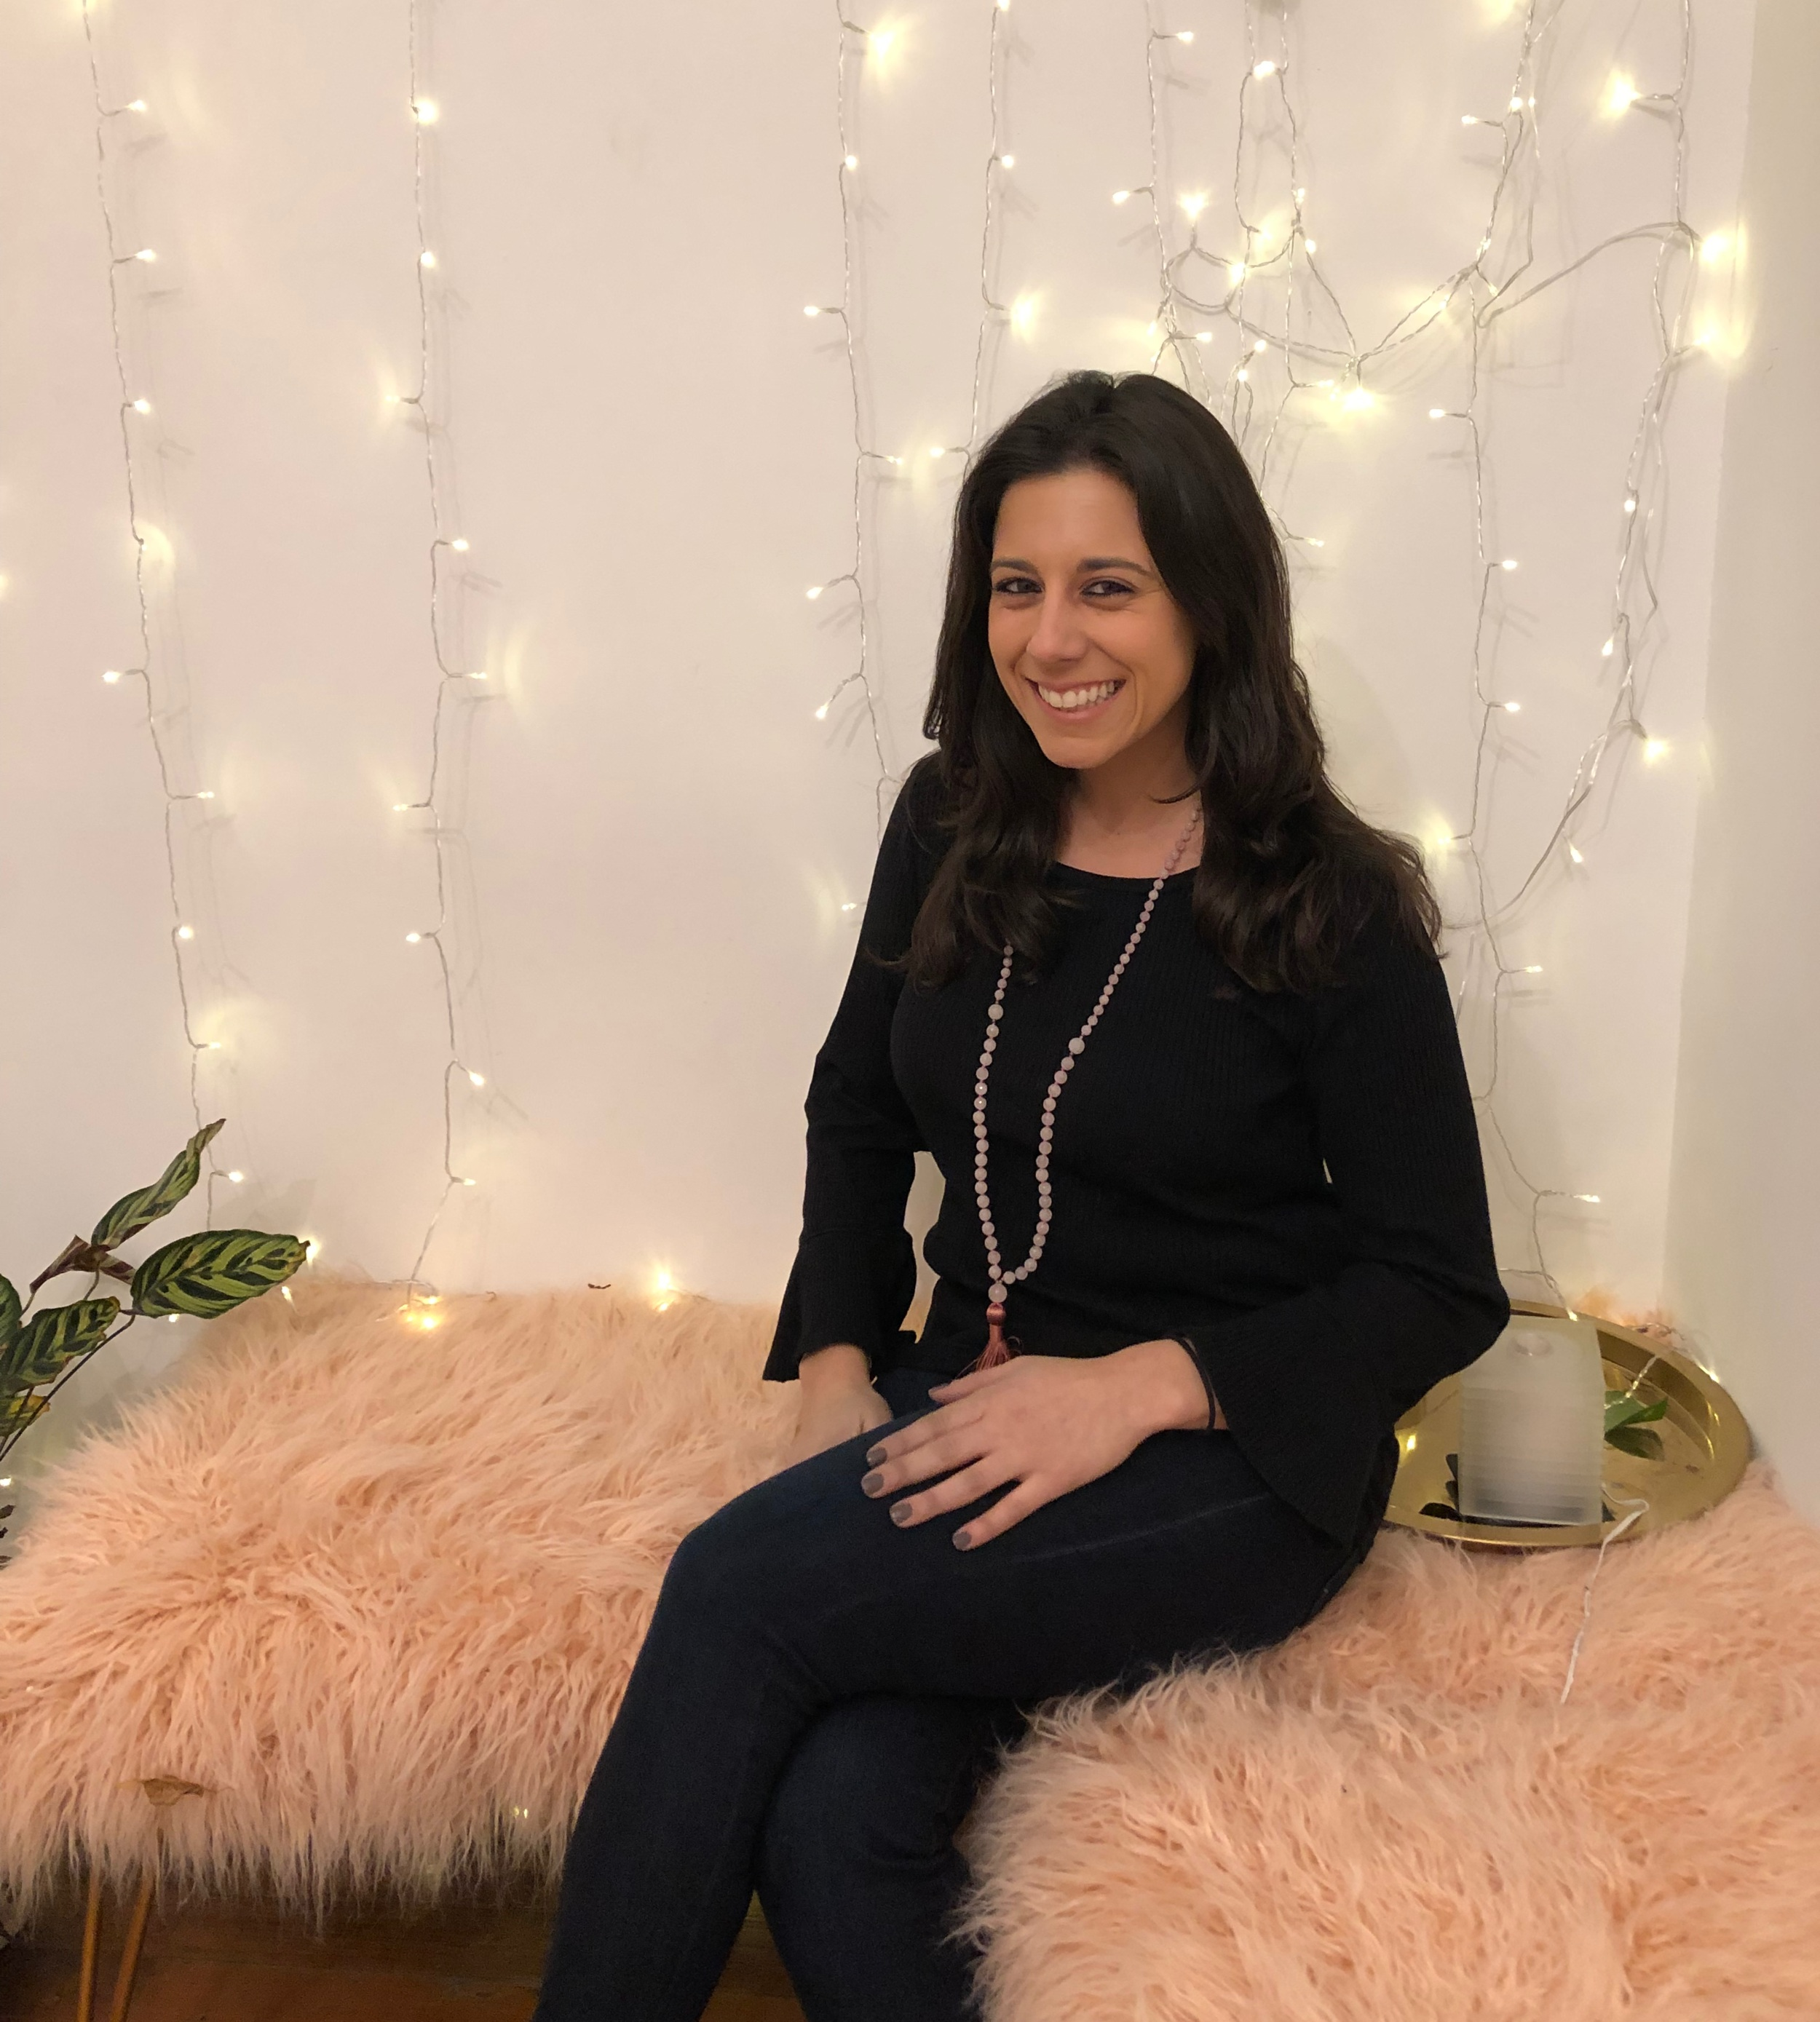 Andrea Pagano - founder of healthfully yours